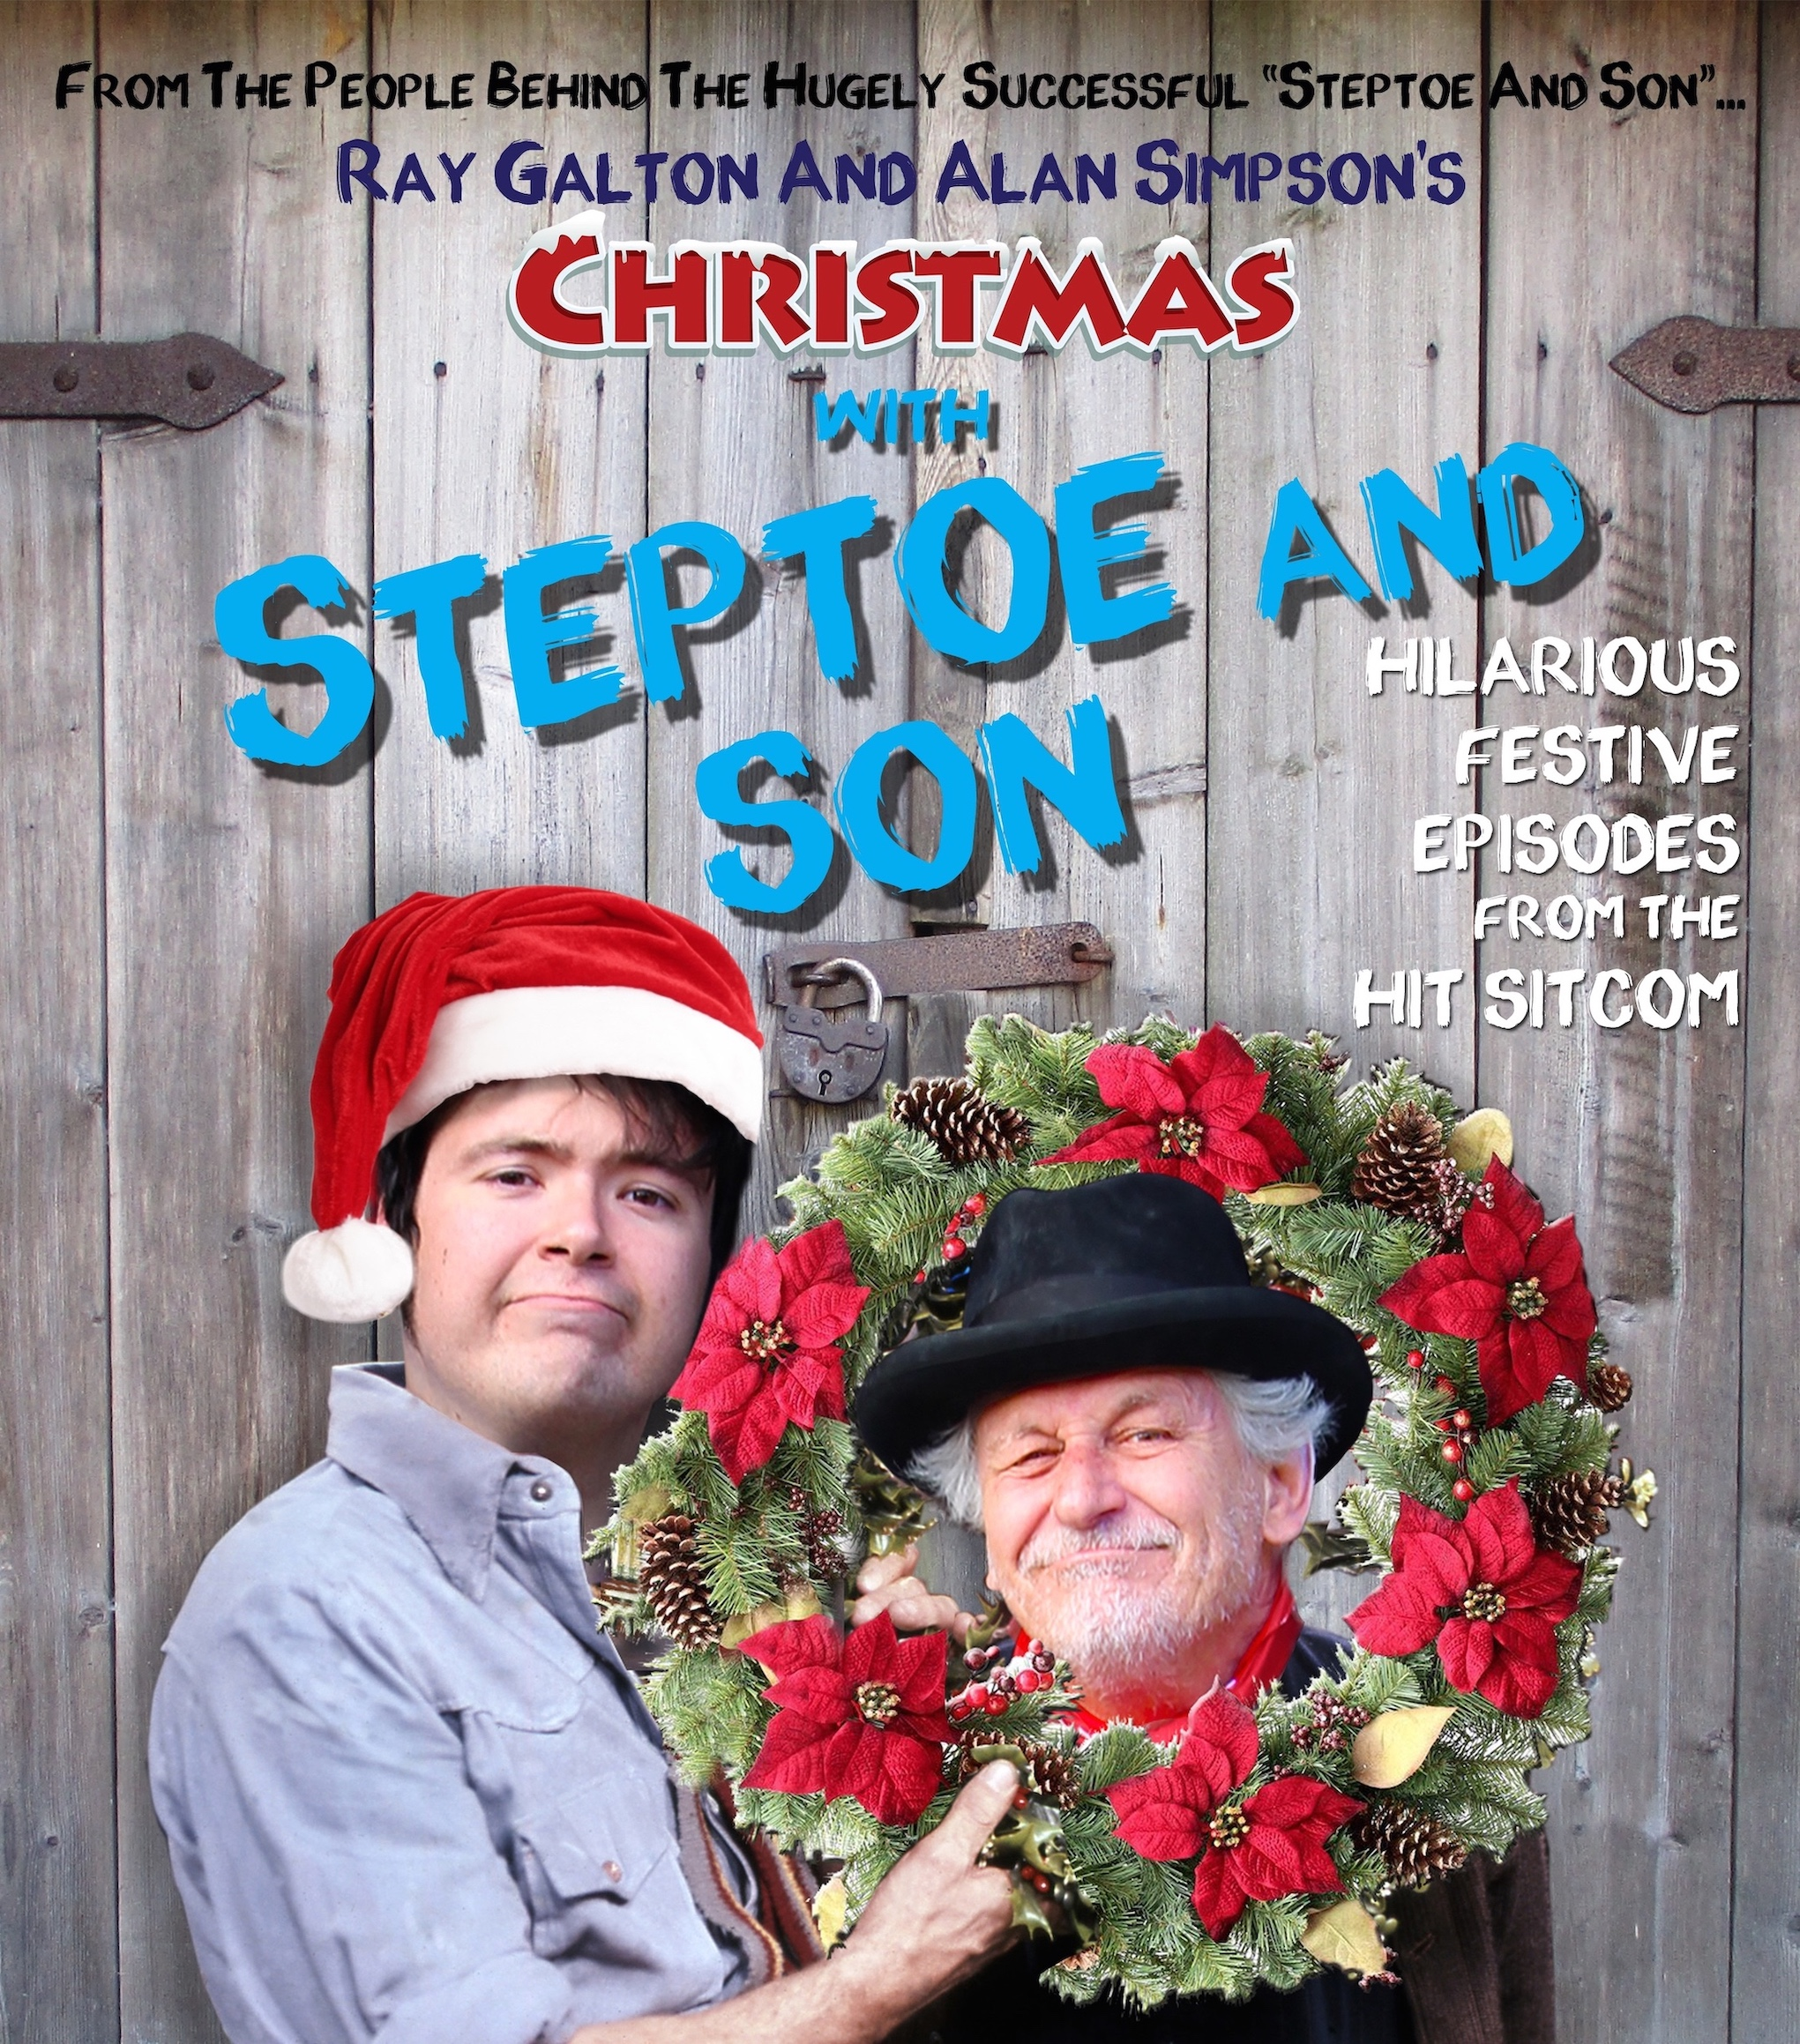 Christmas with Steptoe and Son.jpg